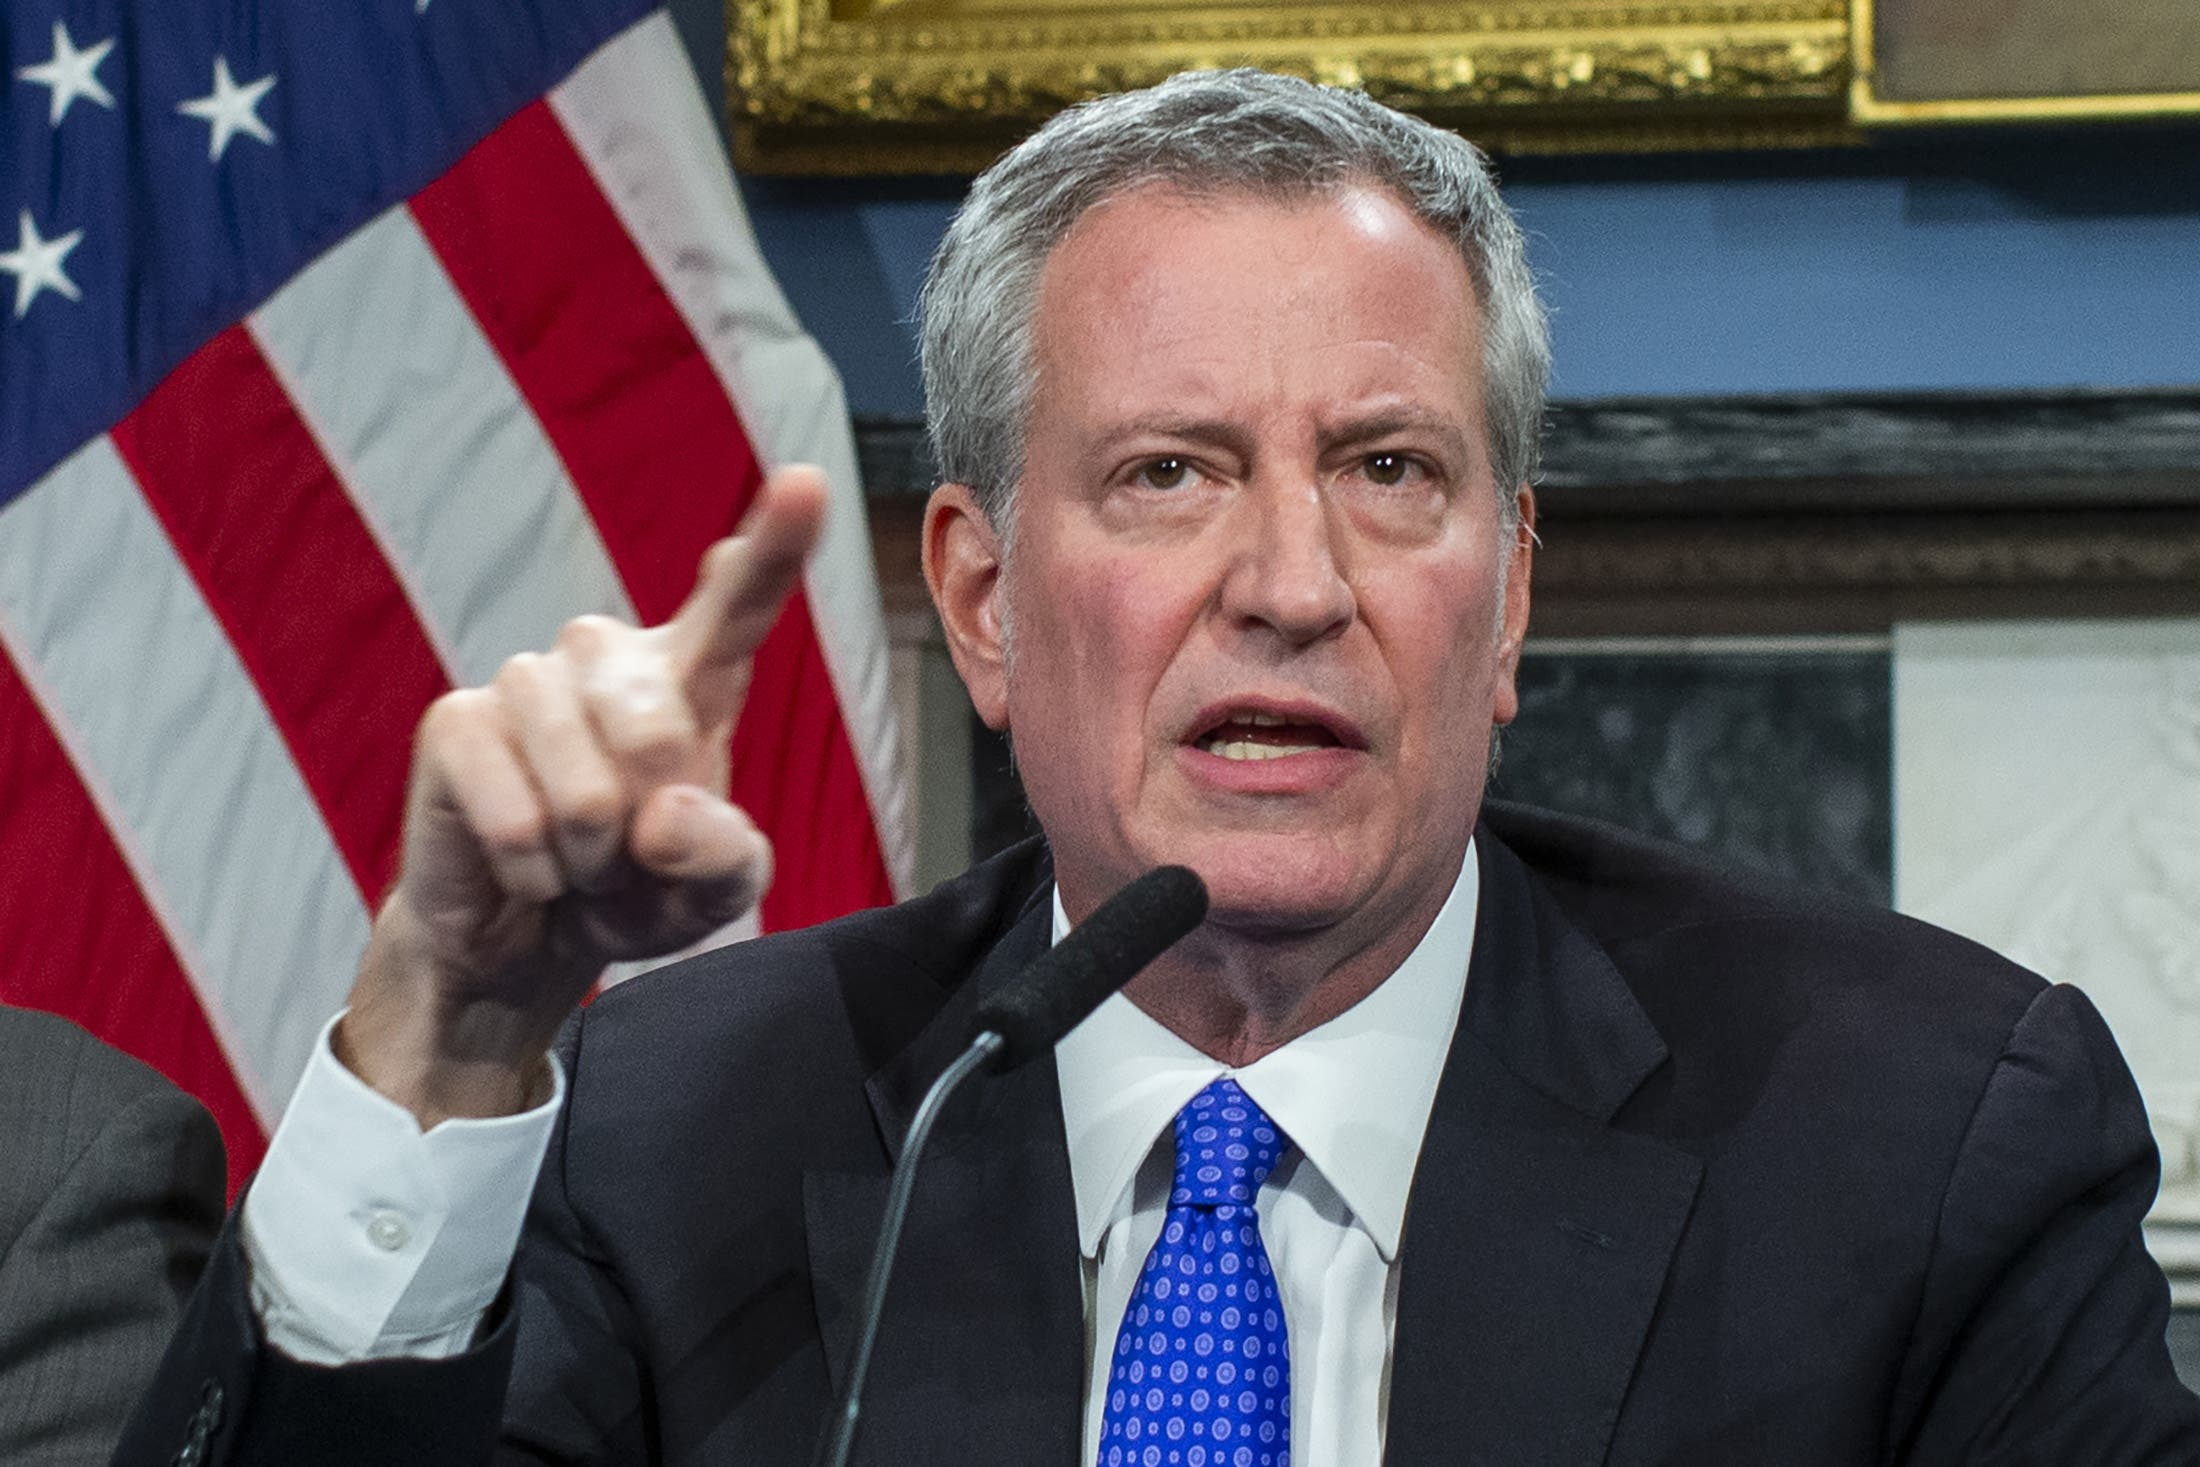 New York Mayor Bill de Blasio speaks to the media during a press conference at City Hall in New York City. (AFP)